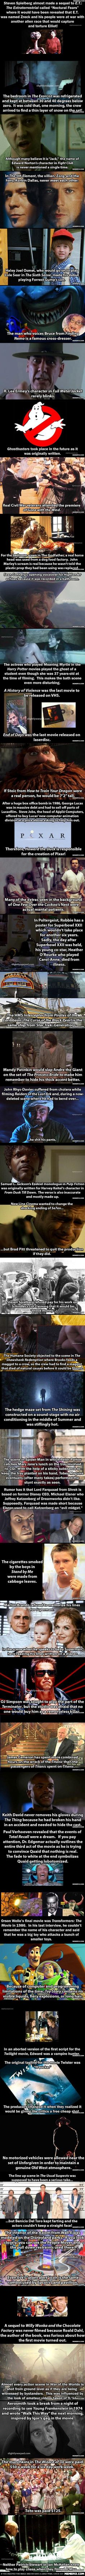 Interesting movie facts: